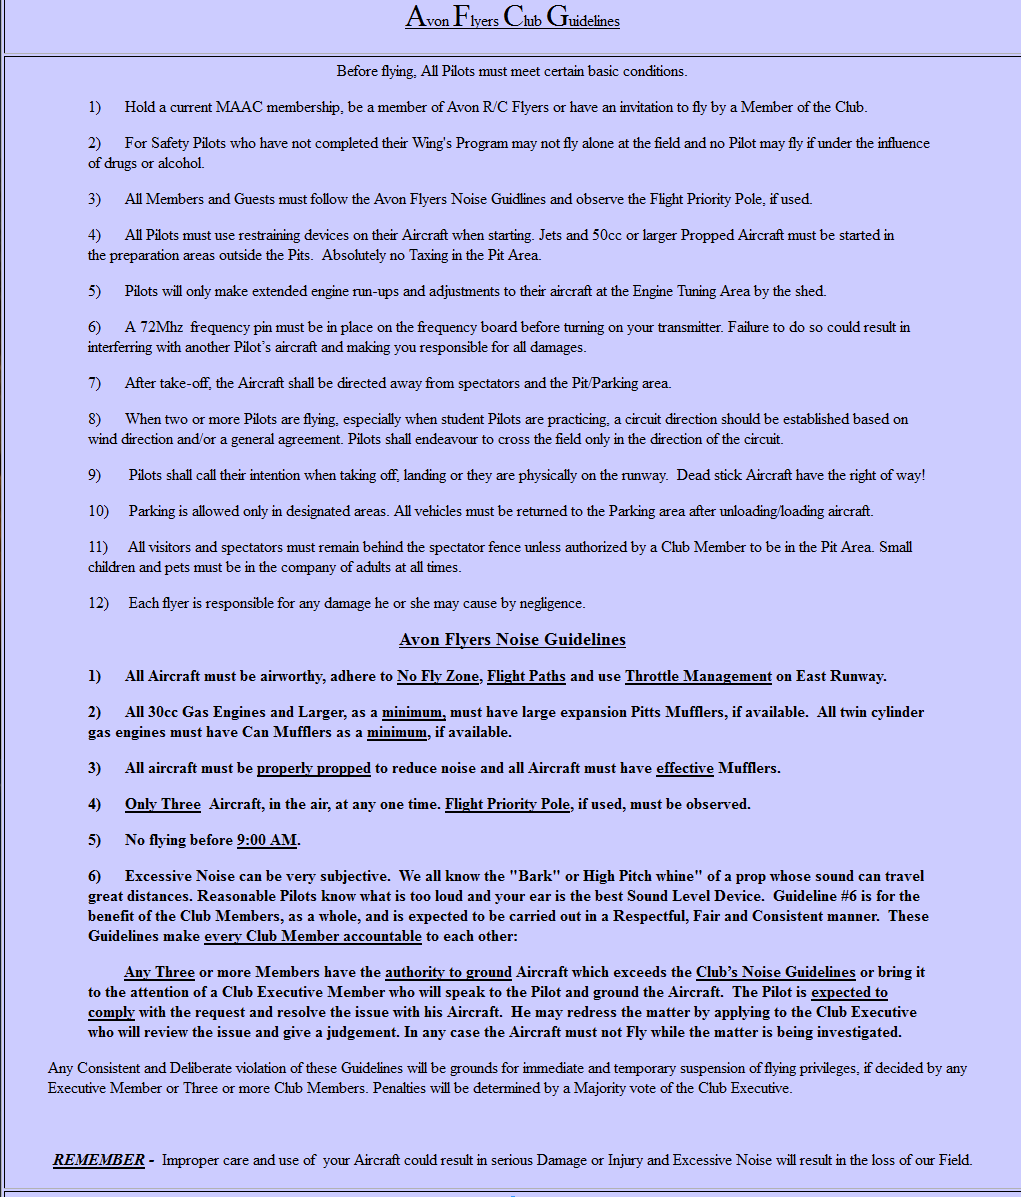 Avon_Flyers_Club_Guidelines.PNG